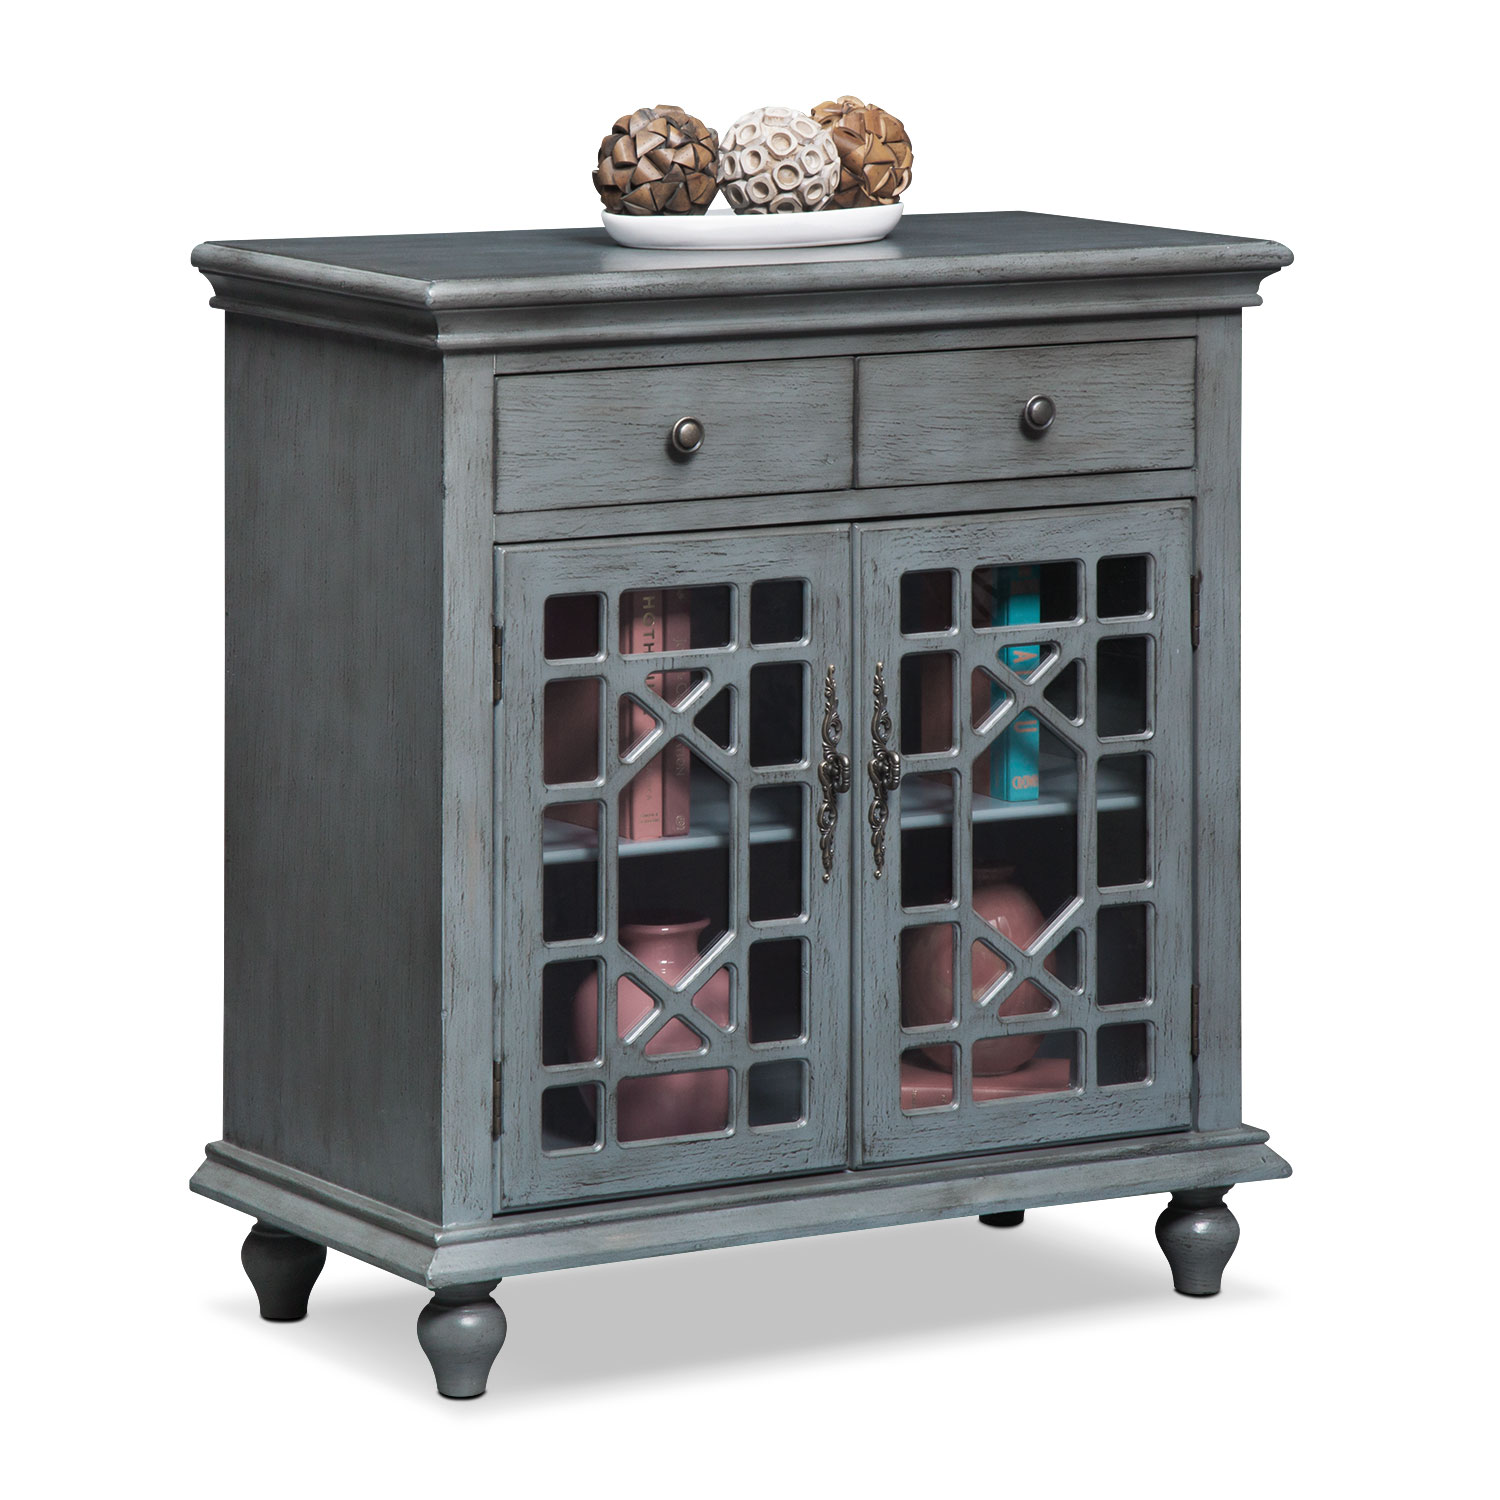 Grenoble Accent Cabinet - Gray